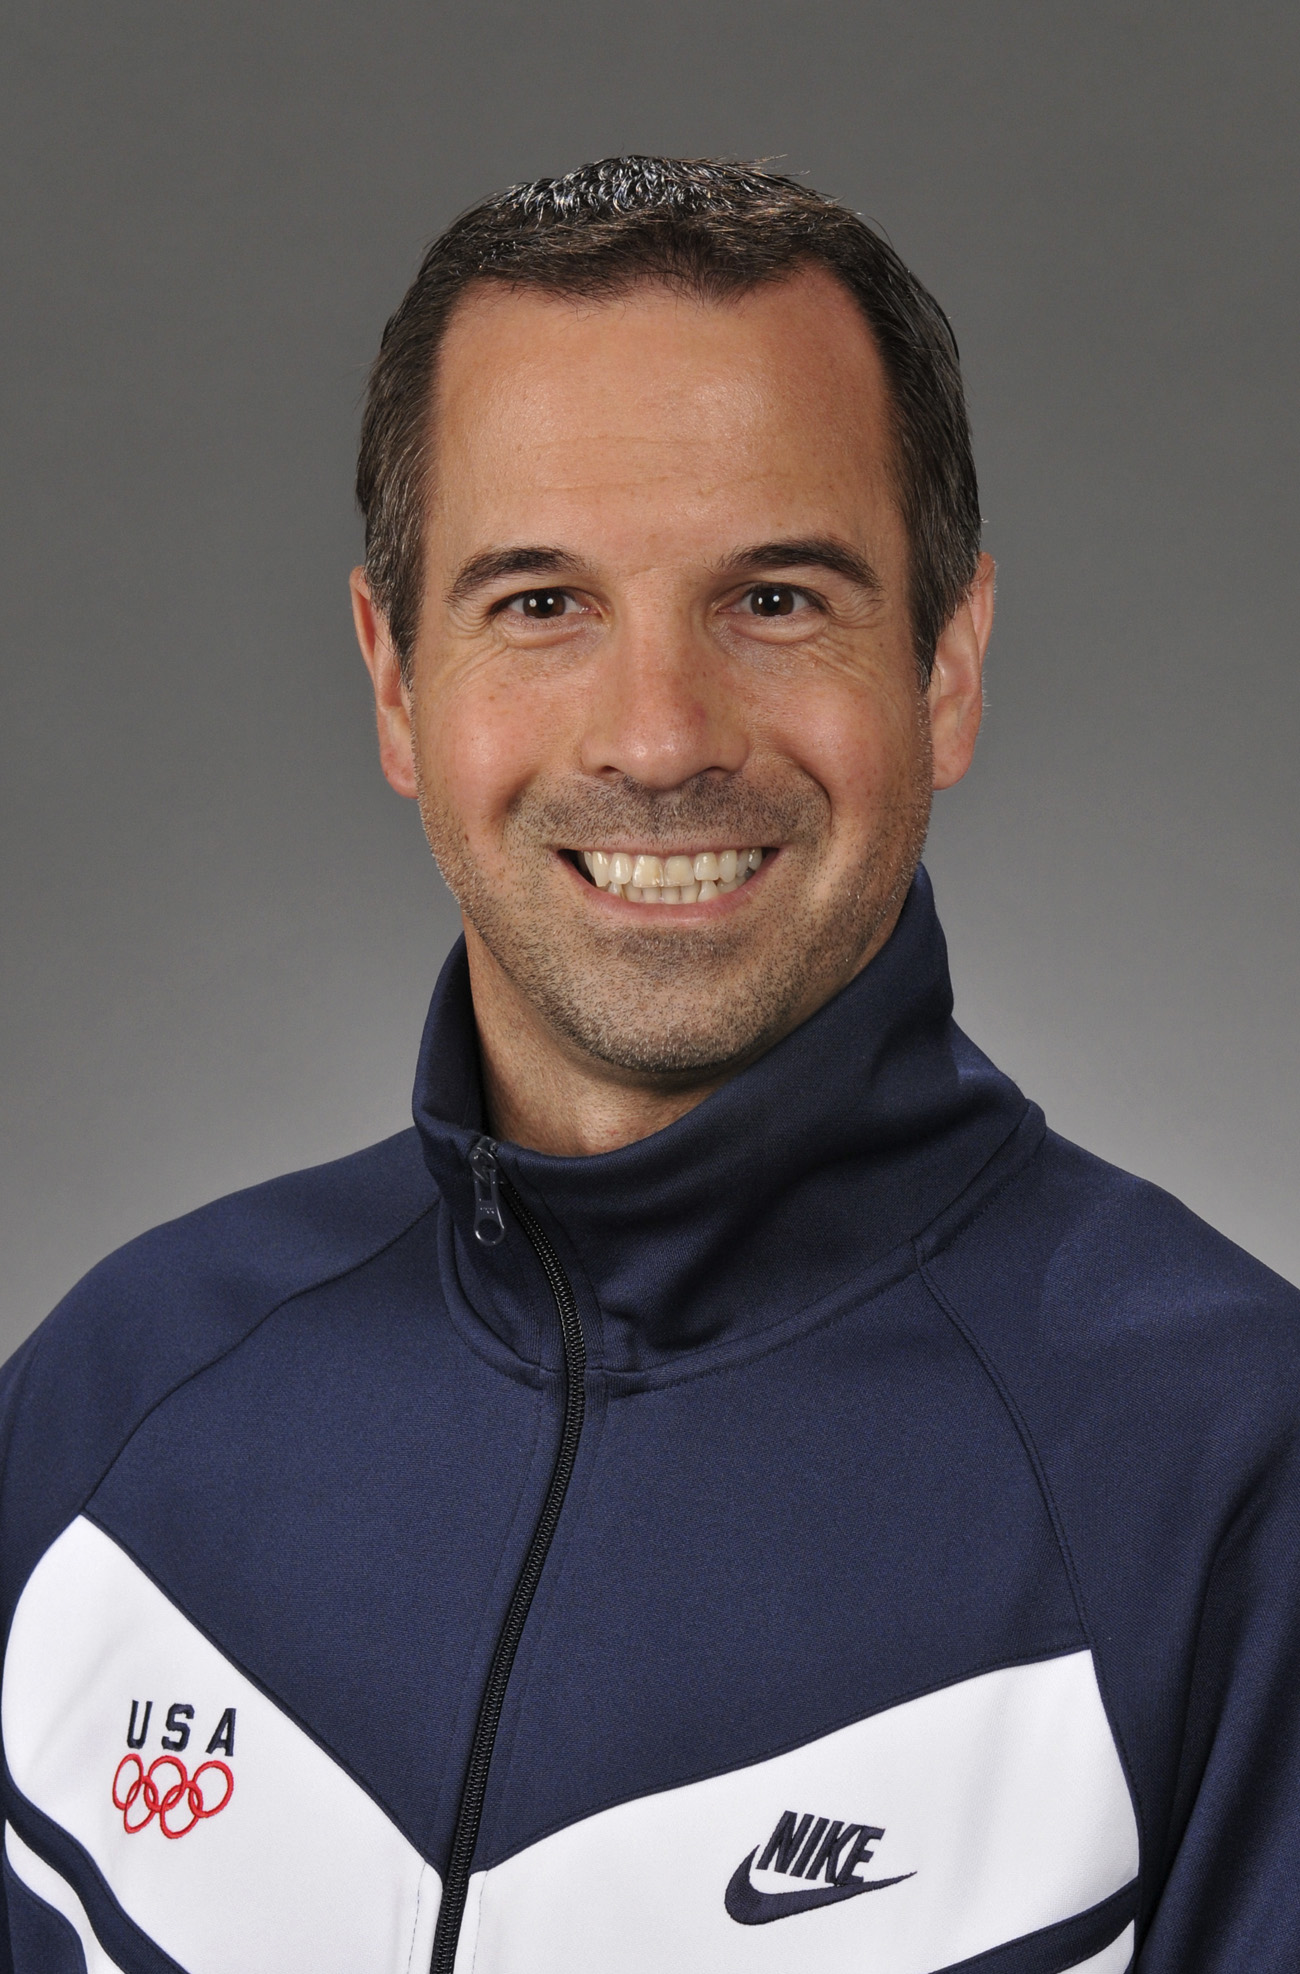 Marvin Sharp was a member of the 2008 U.S. Olympic Women's Gymnastics team.